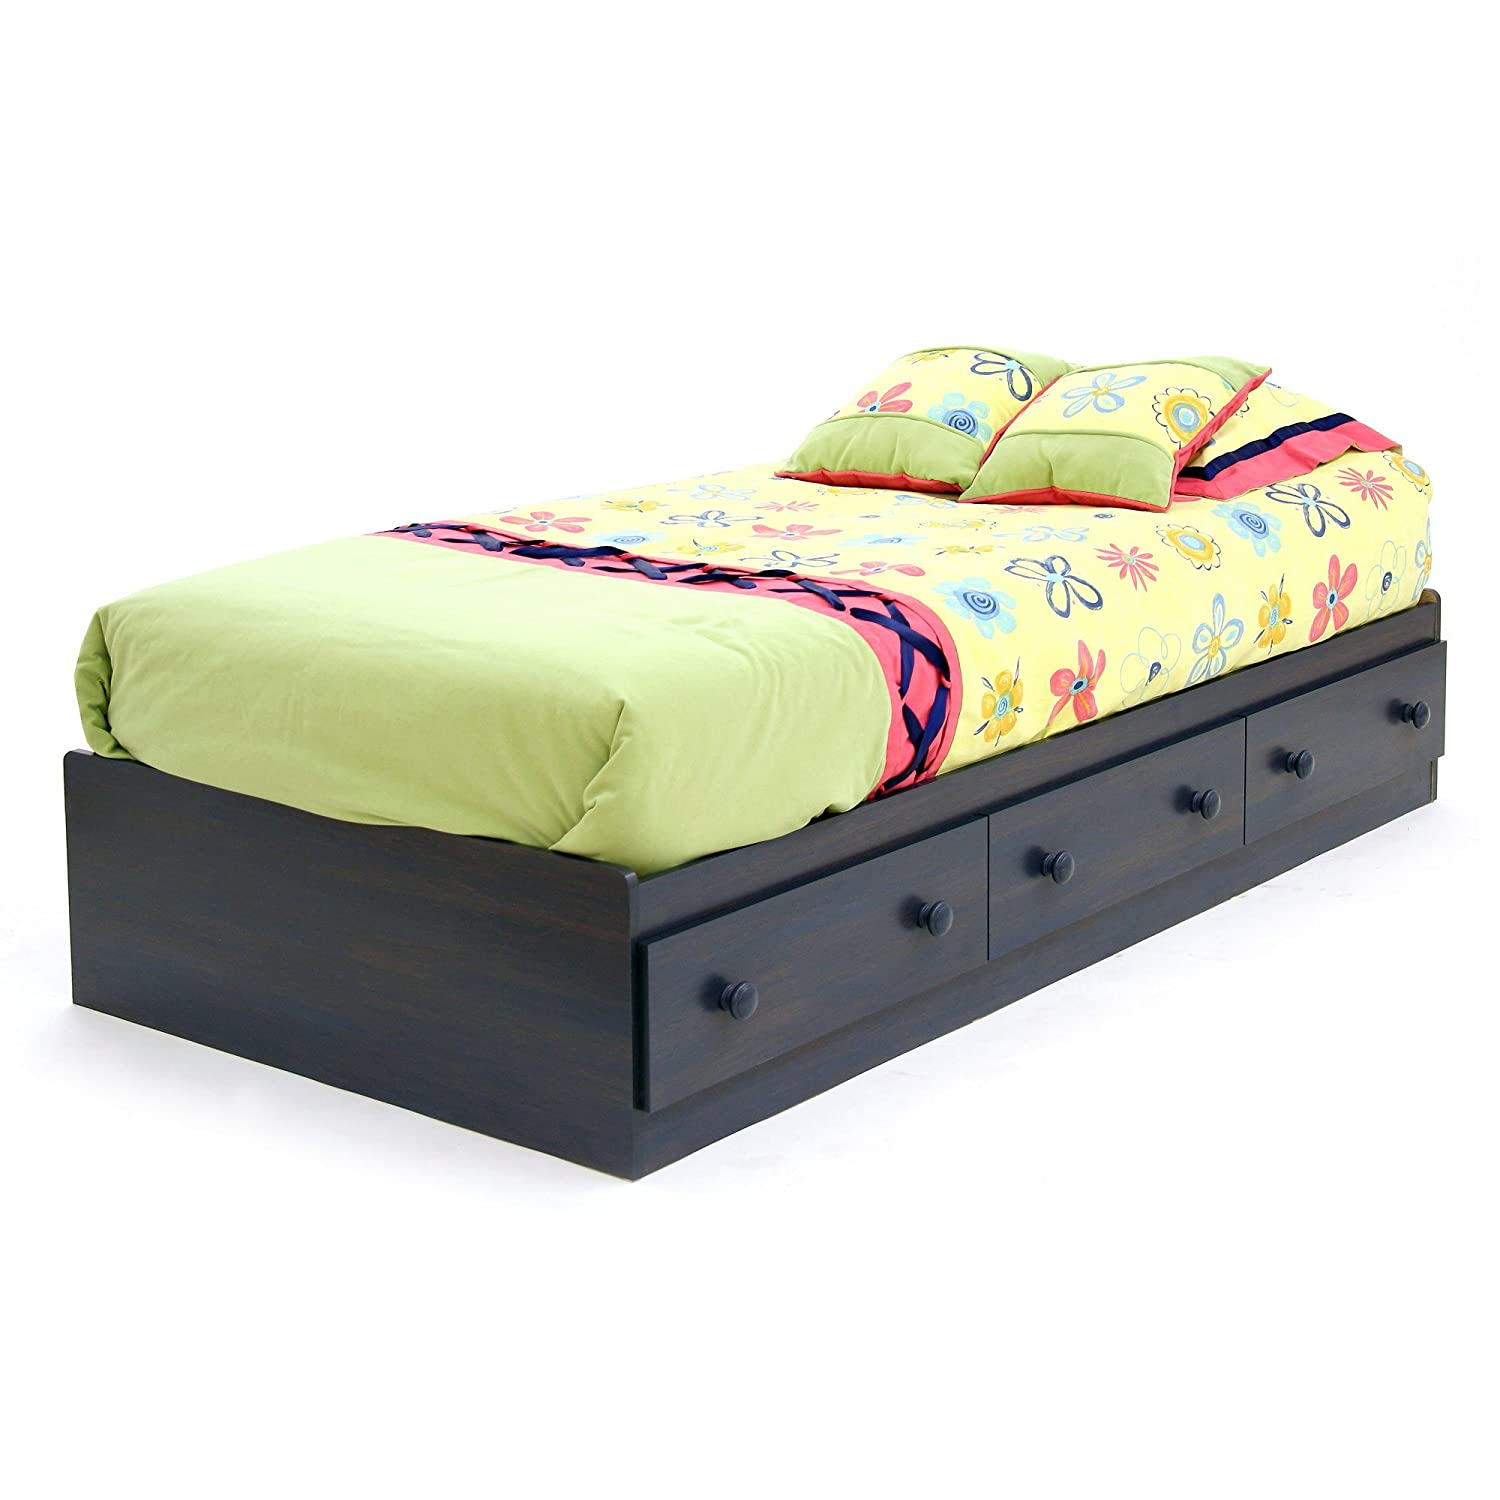 Summer Breeze Collection Twin Bed With Storage   Platform Bed With 3 Drawers   Blueberry By South Shore by South Shore